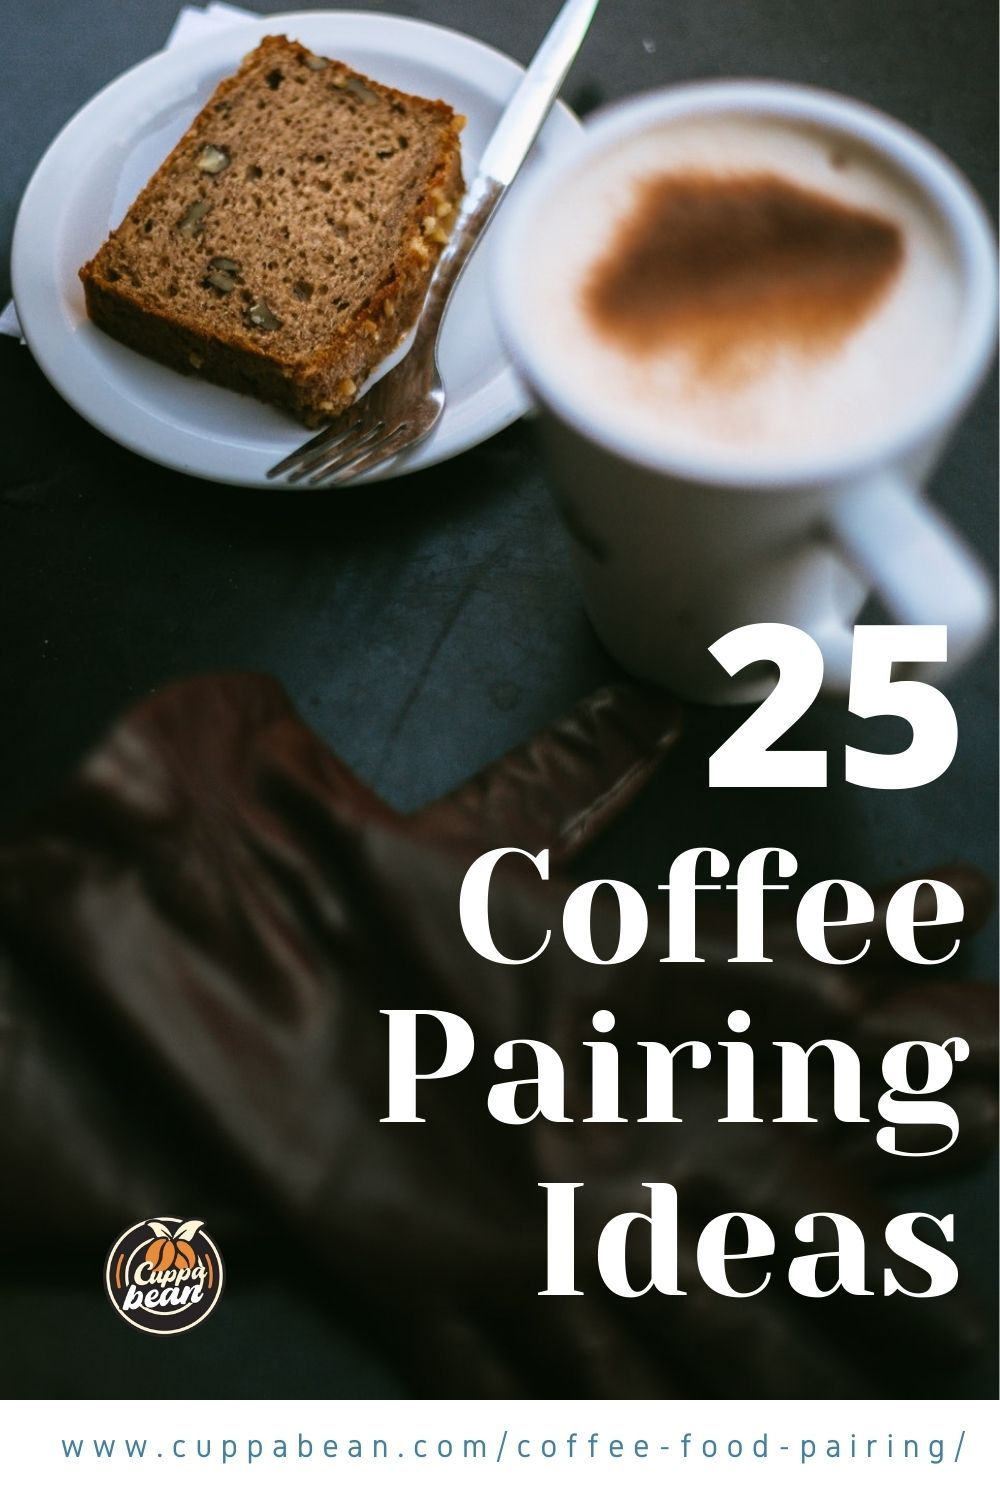 How To Pair Coffee With Food